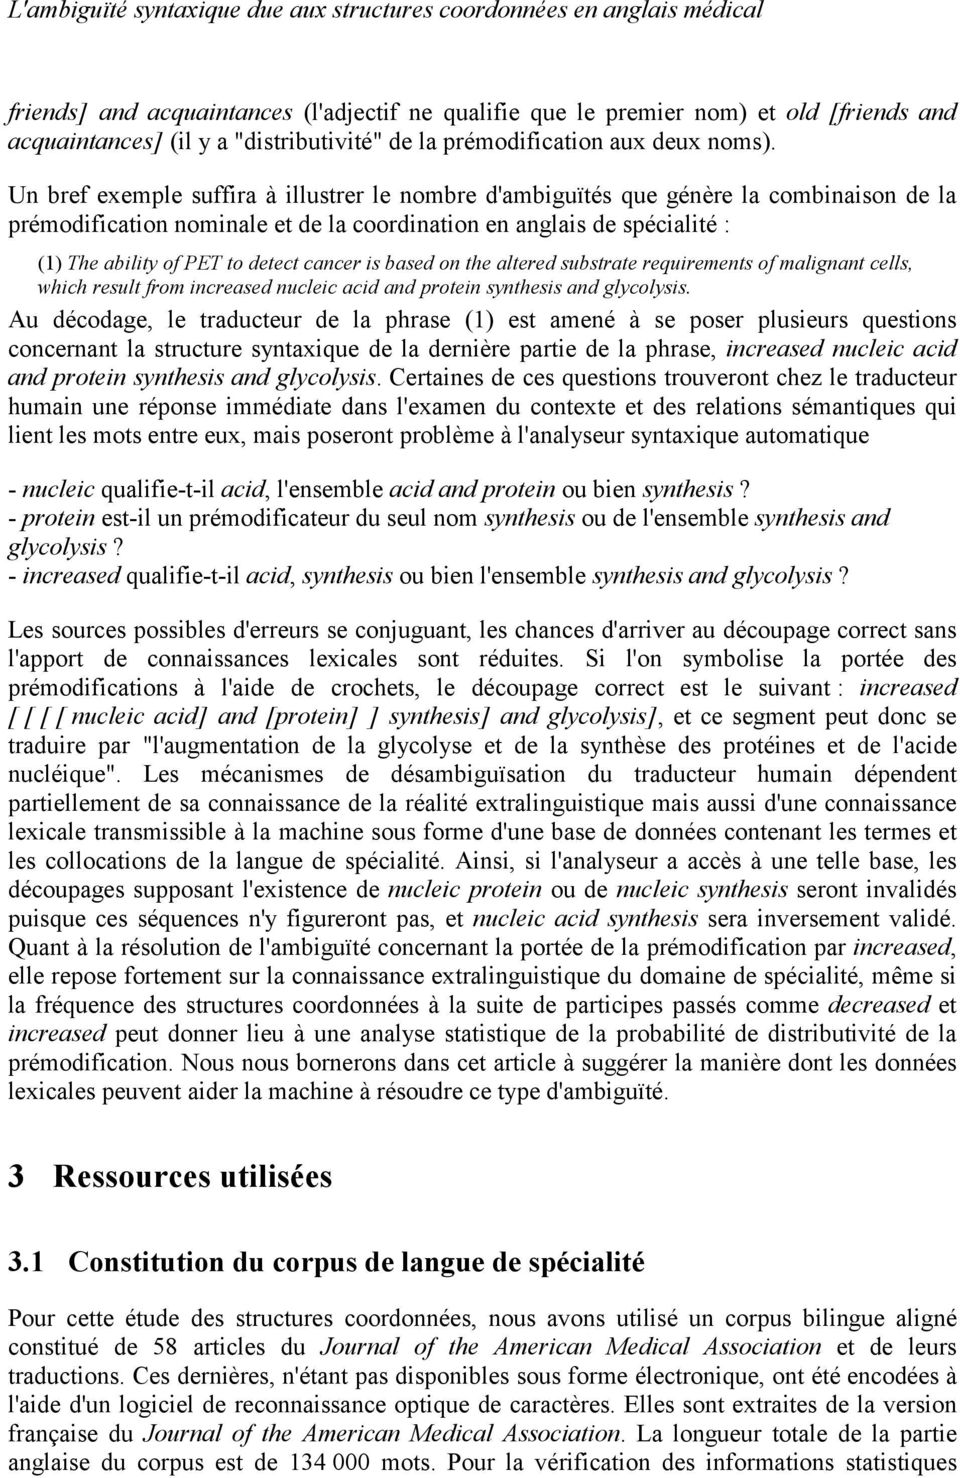 Un bref exemple suffira à illustrer le nombre d'ambiguïtés que génère la combinaison de la prémodification nominale et de la coordination en anglais de spécialité : (1) The ability of PET to detect